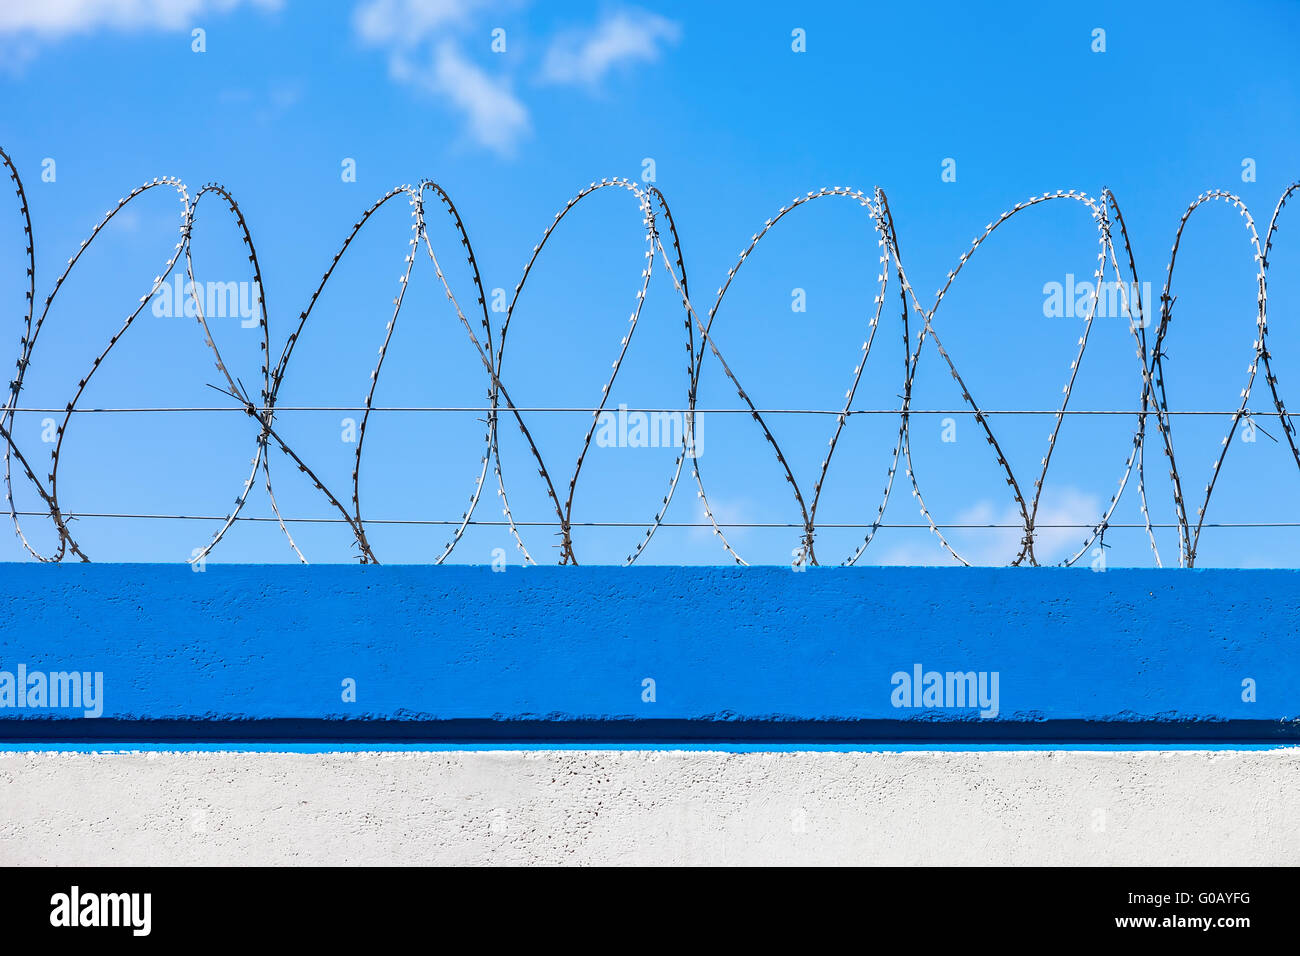 Barbed wire on the fence against a blue sky background - Stock Image